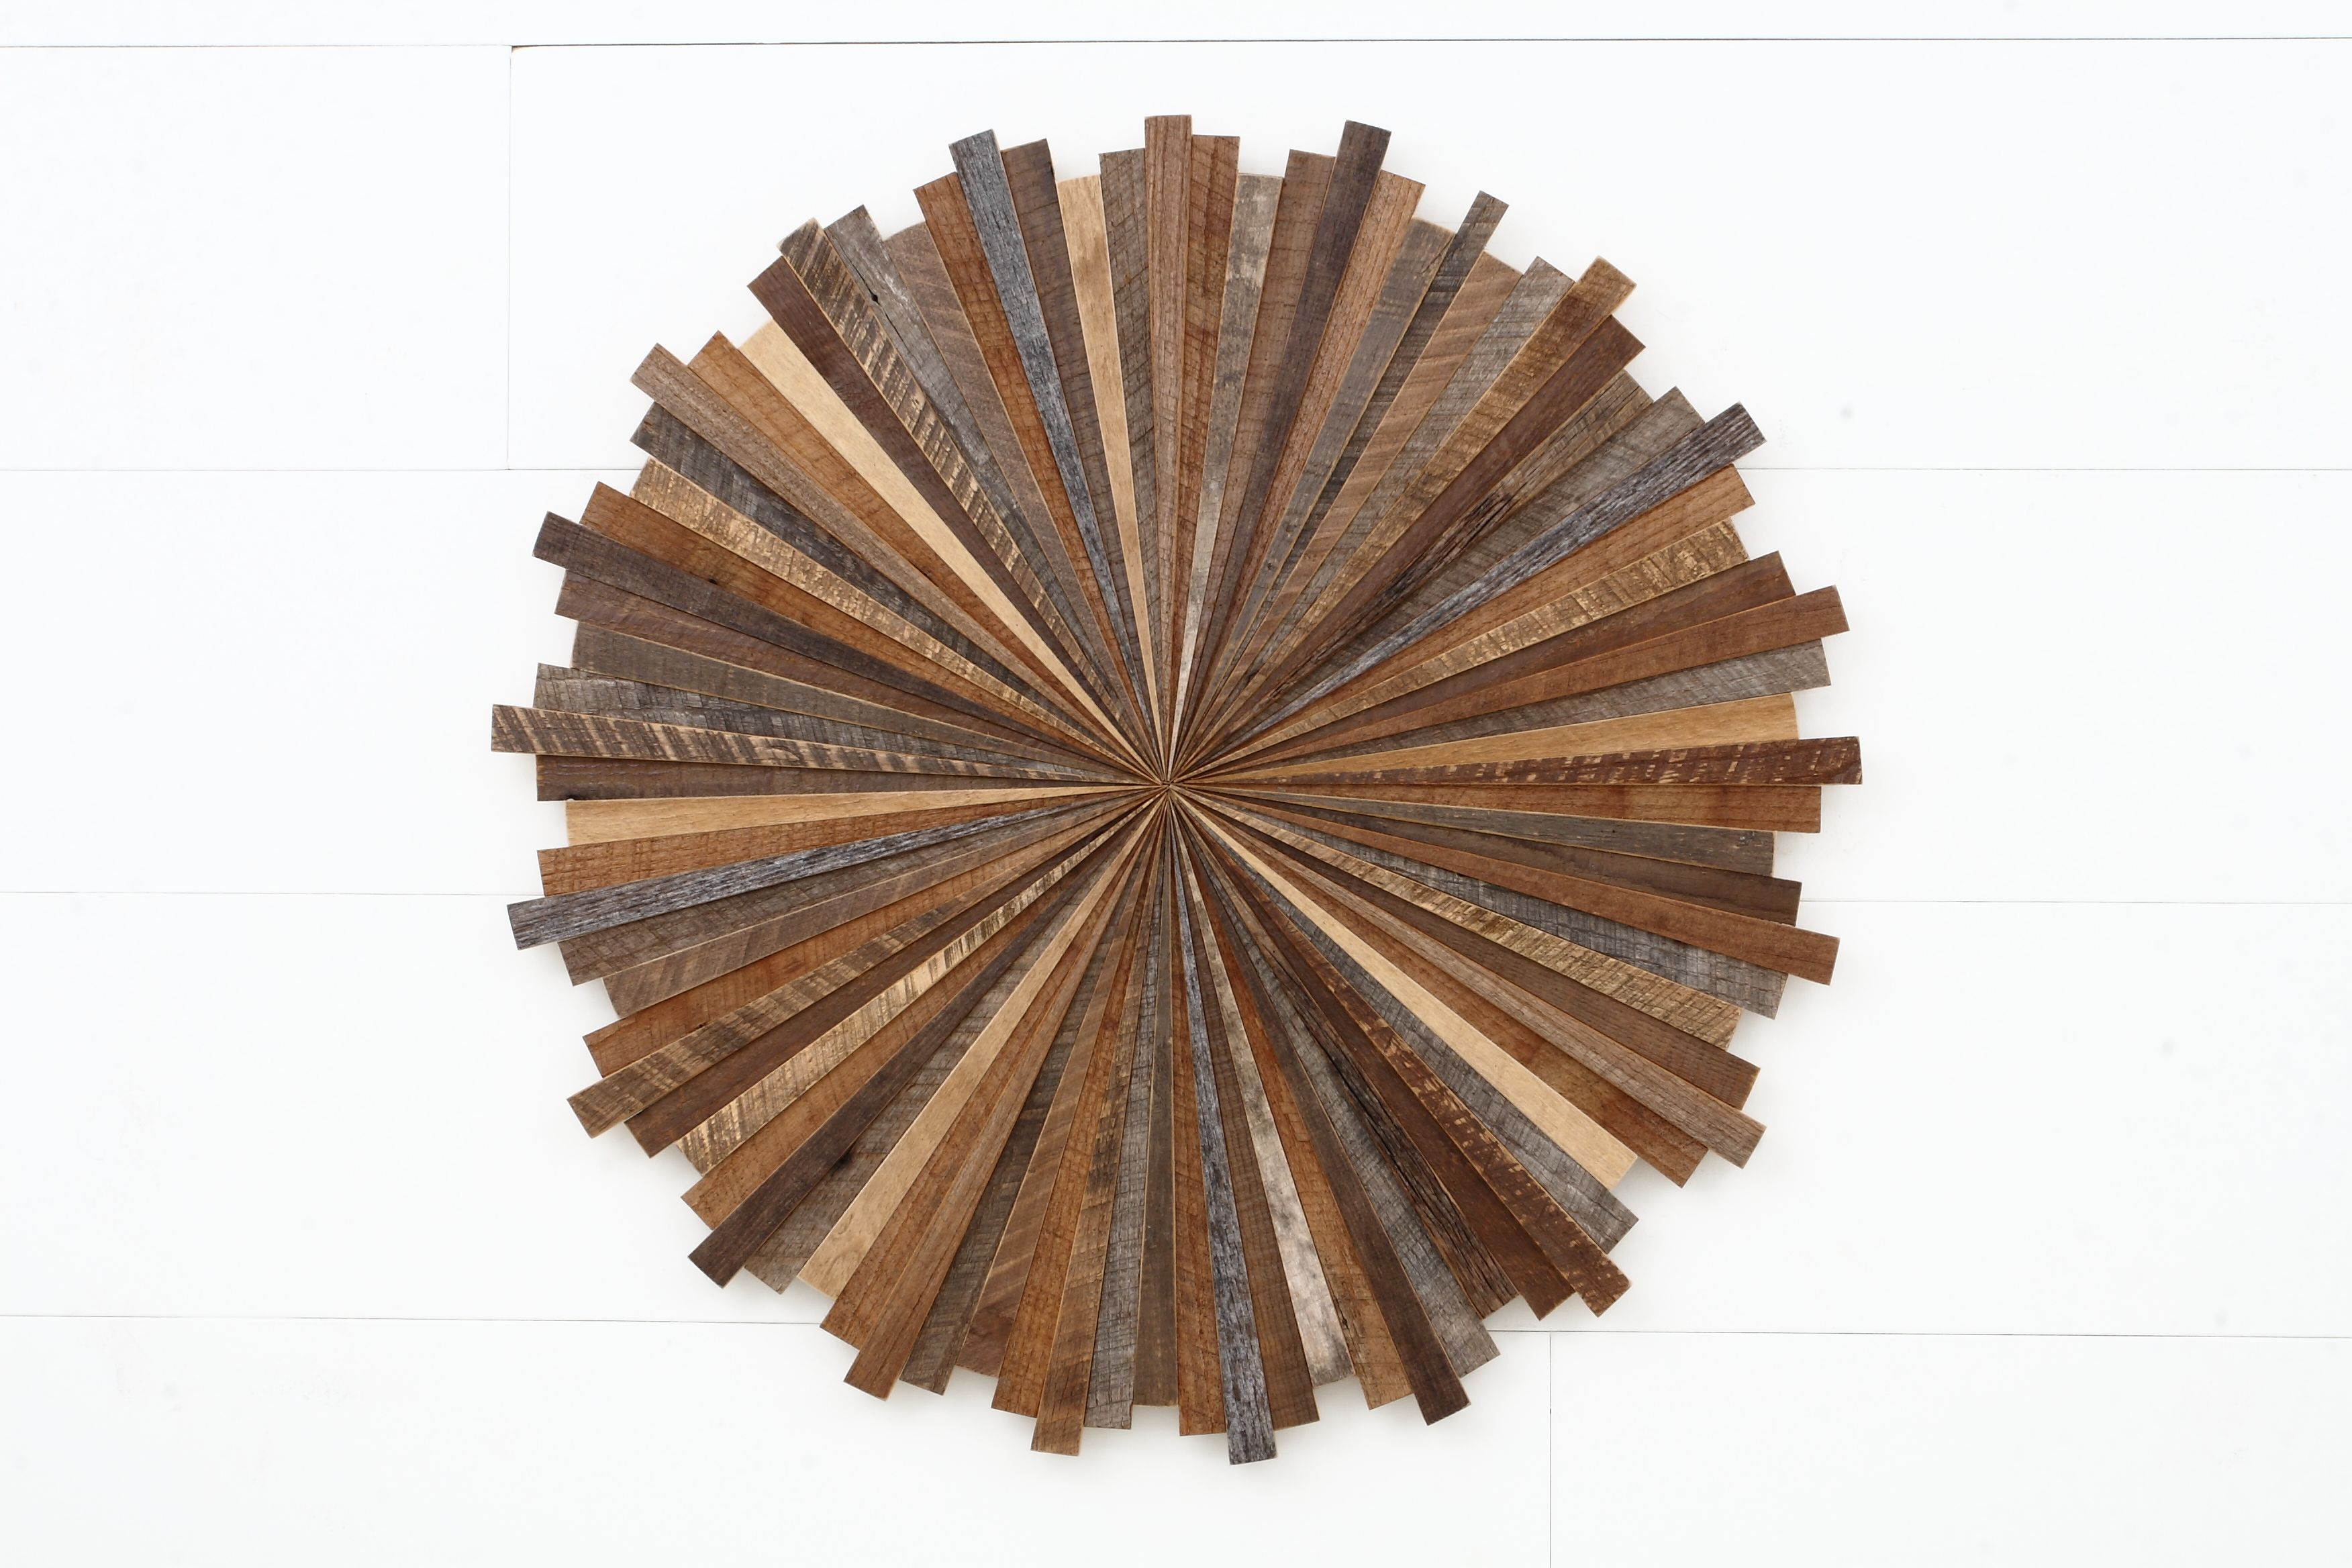 Barnwood Wall Art hand crafted starburst wood wall art, made with old reclaimed